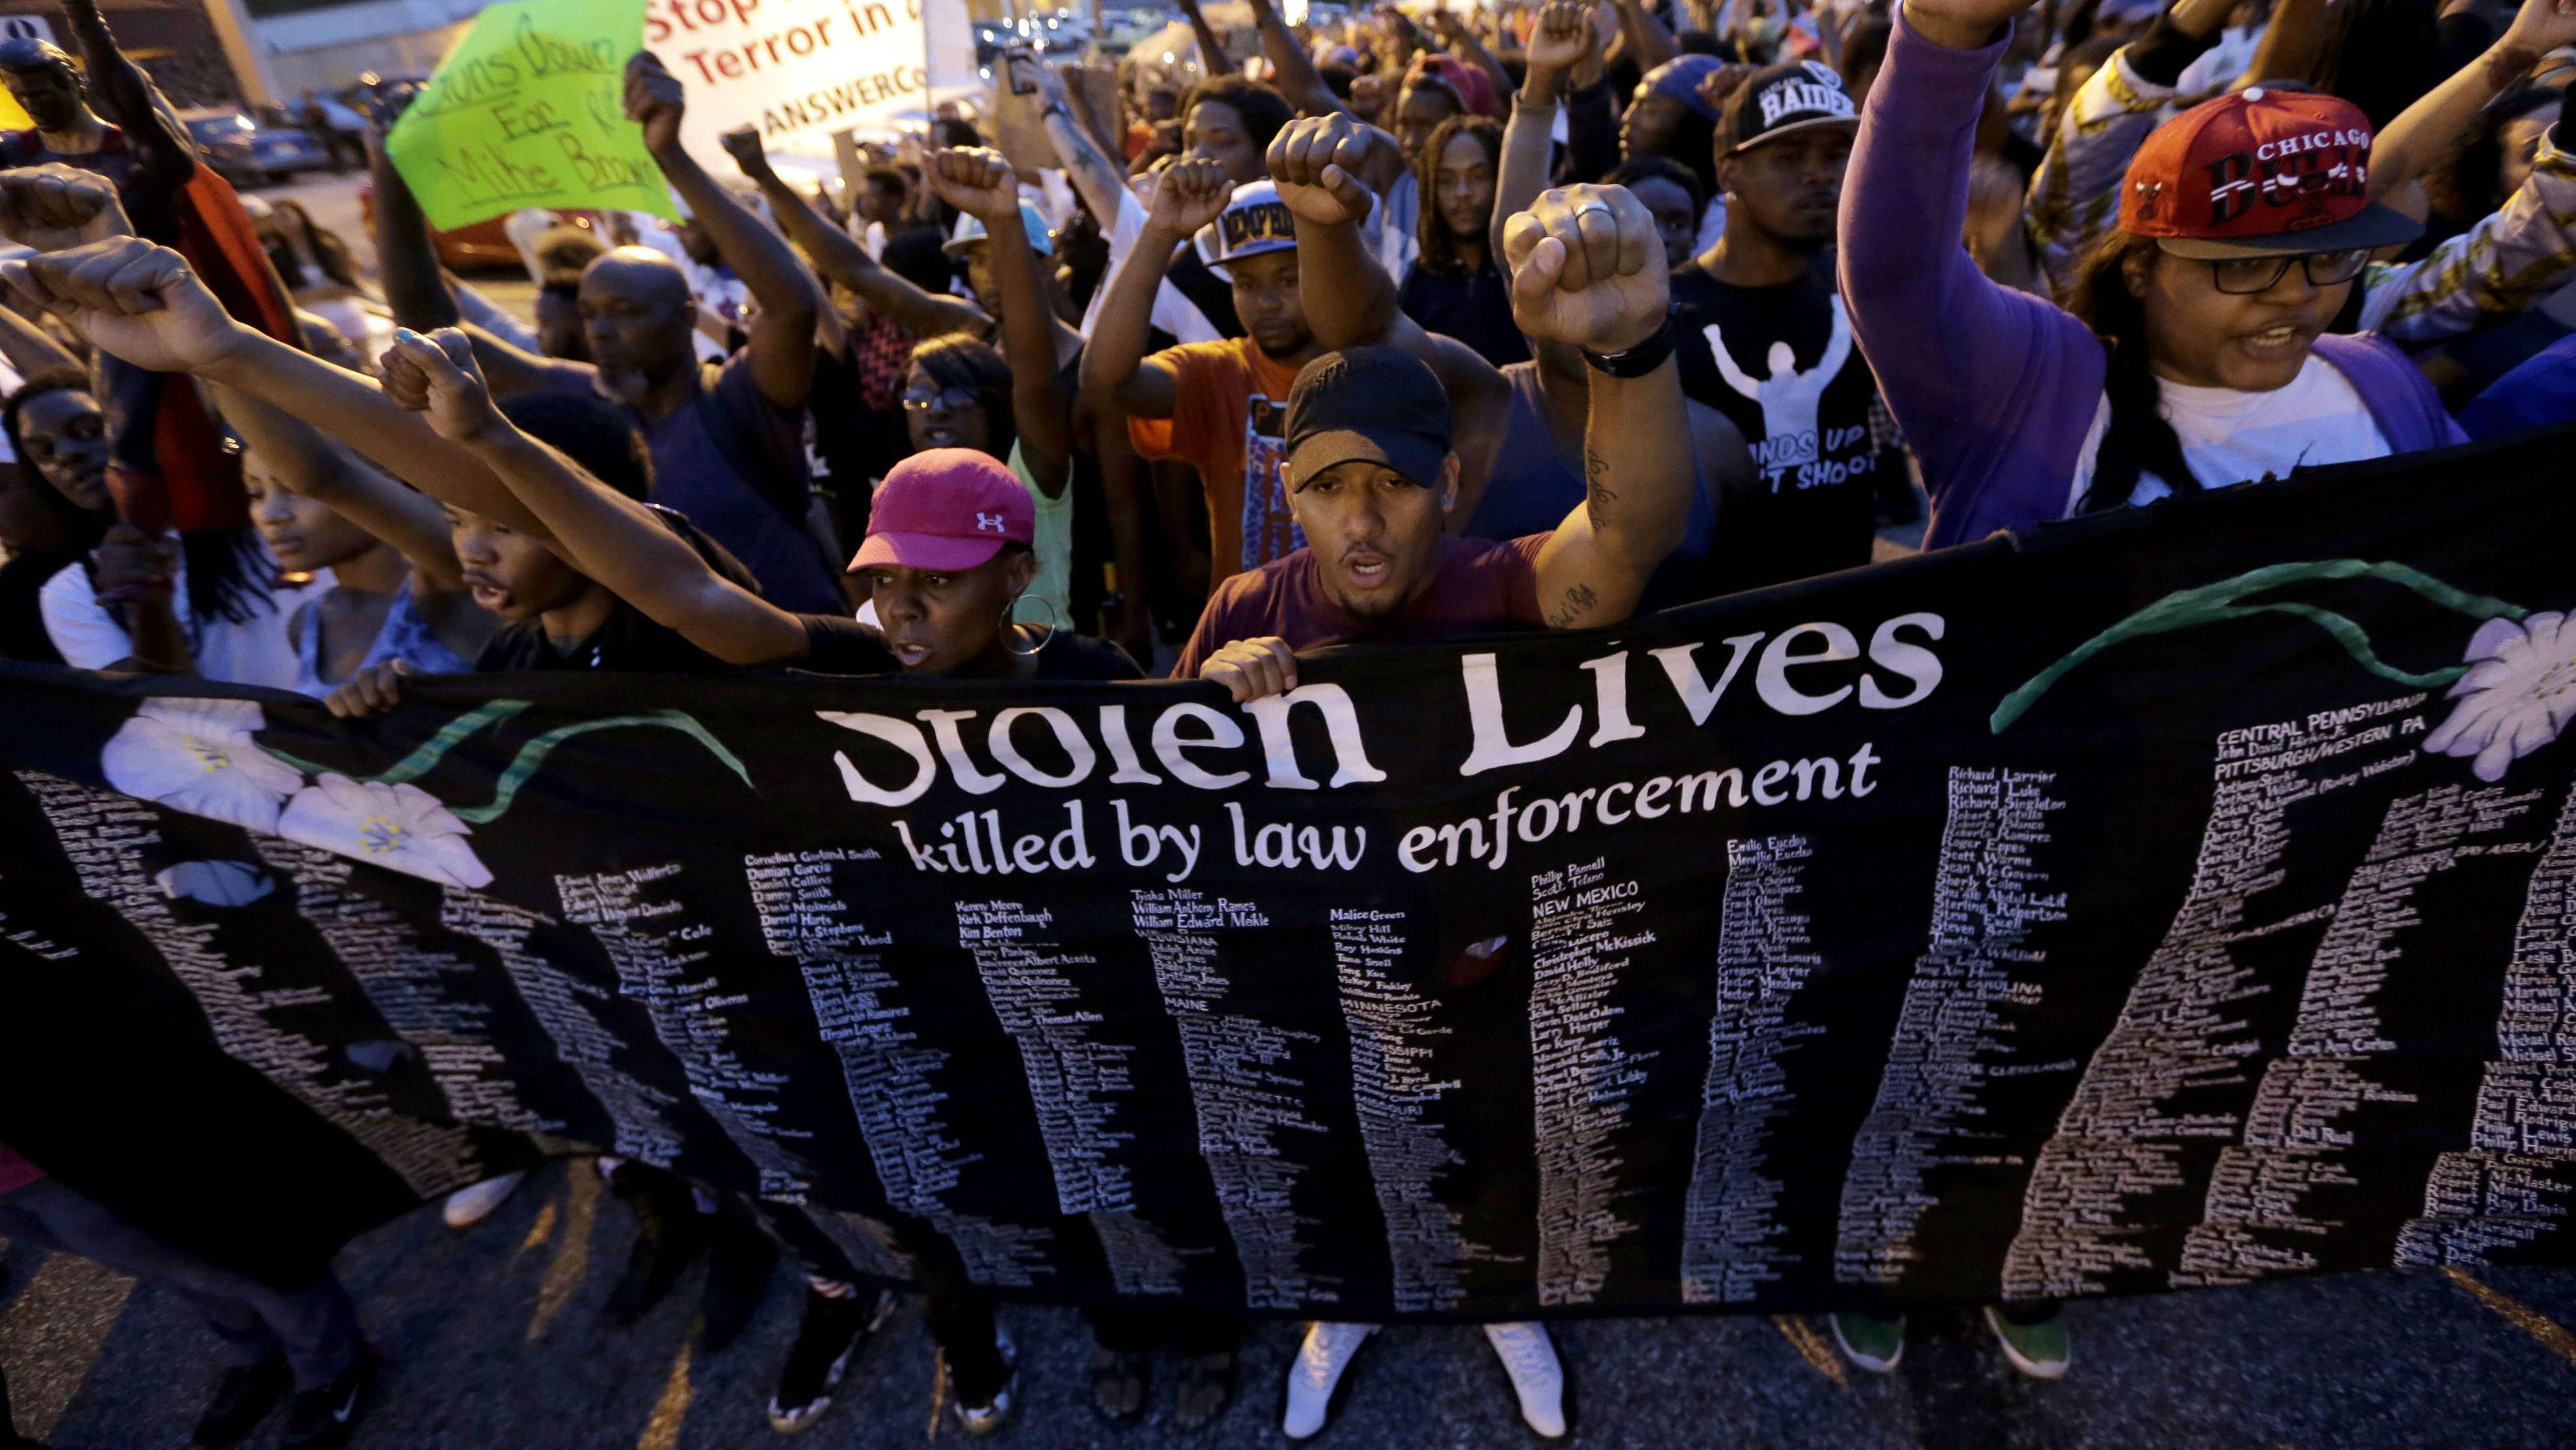 FILE - In this Aug. 16, 2014 file photo, people protest the police shooting death of Michael Brown in Ferguson, Mo. The response to Brown's death turned violent because of a convergence of factors, observers said. (AP Photo/Charlie Riedel, File)